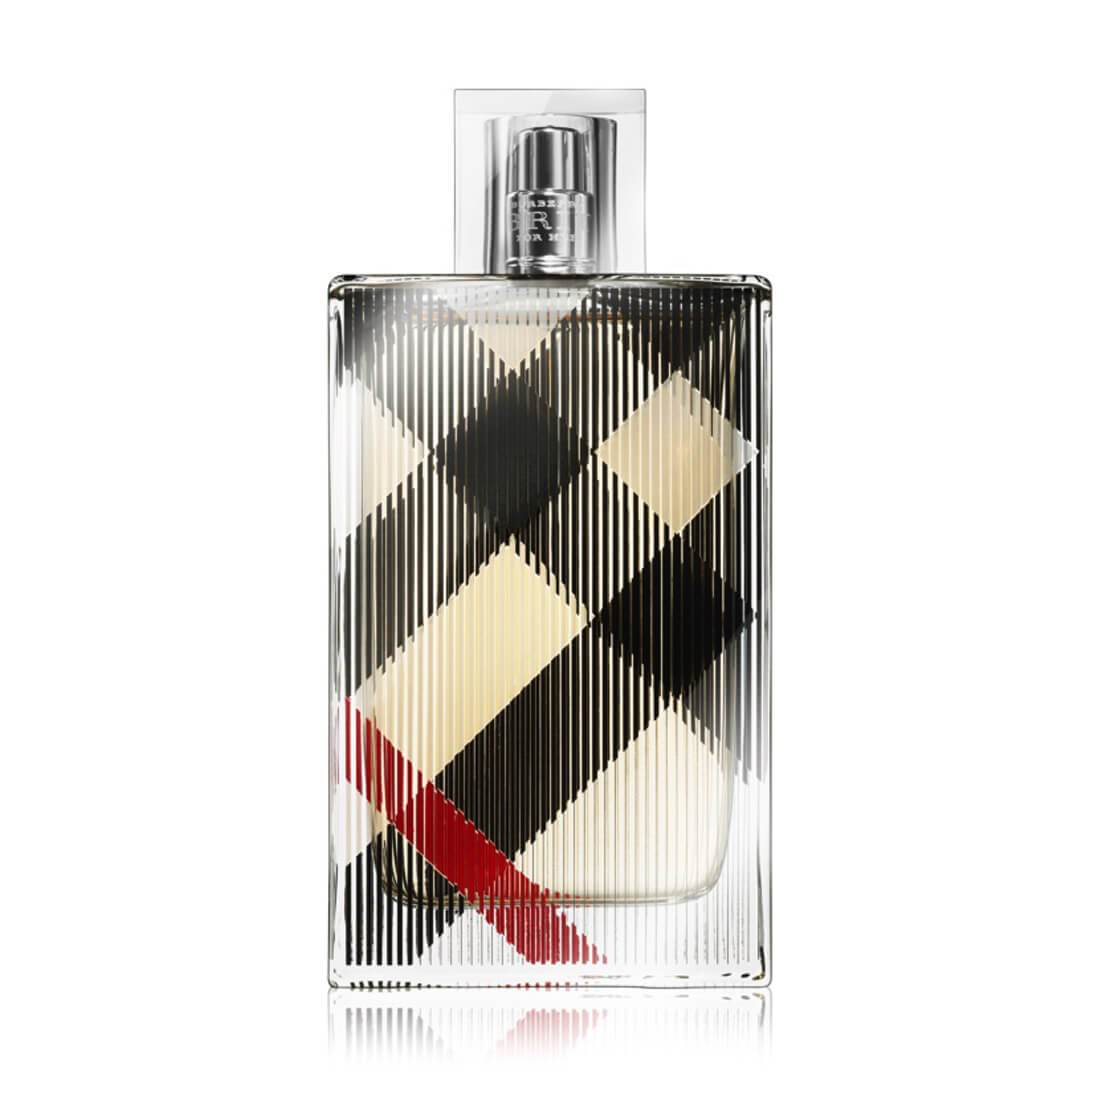 Burberry Brit For Her EDP Perfume -100ml